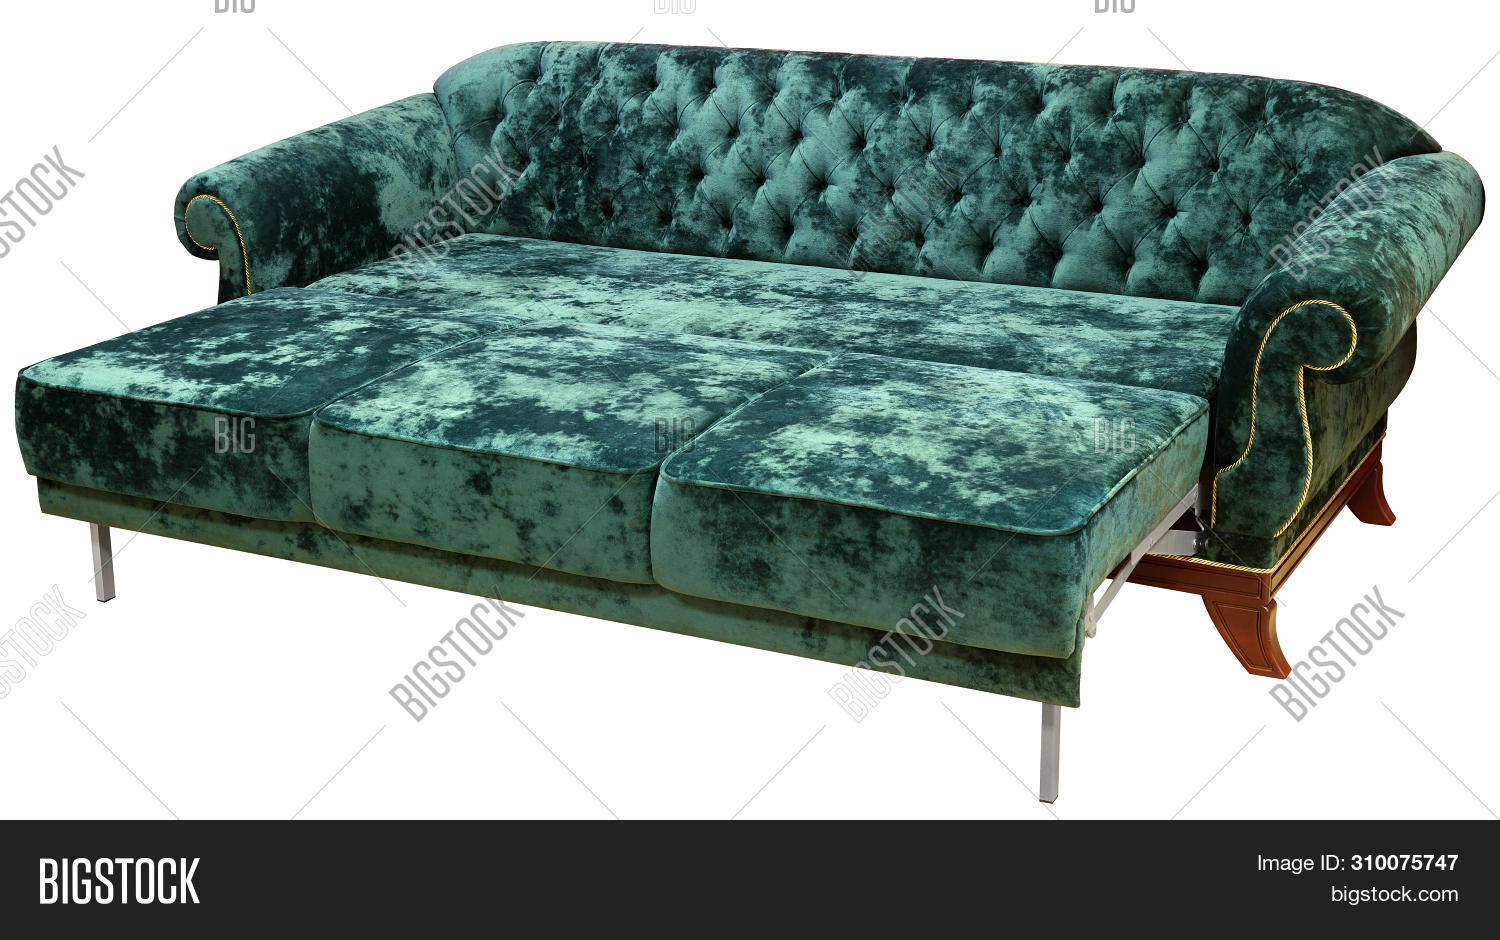 Astounding Classic Sofa Isolated Image Photo Free Trial Bigstock Ocoug Best Dining Table And Chair Ideas Images Ocougorg